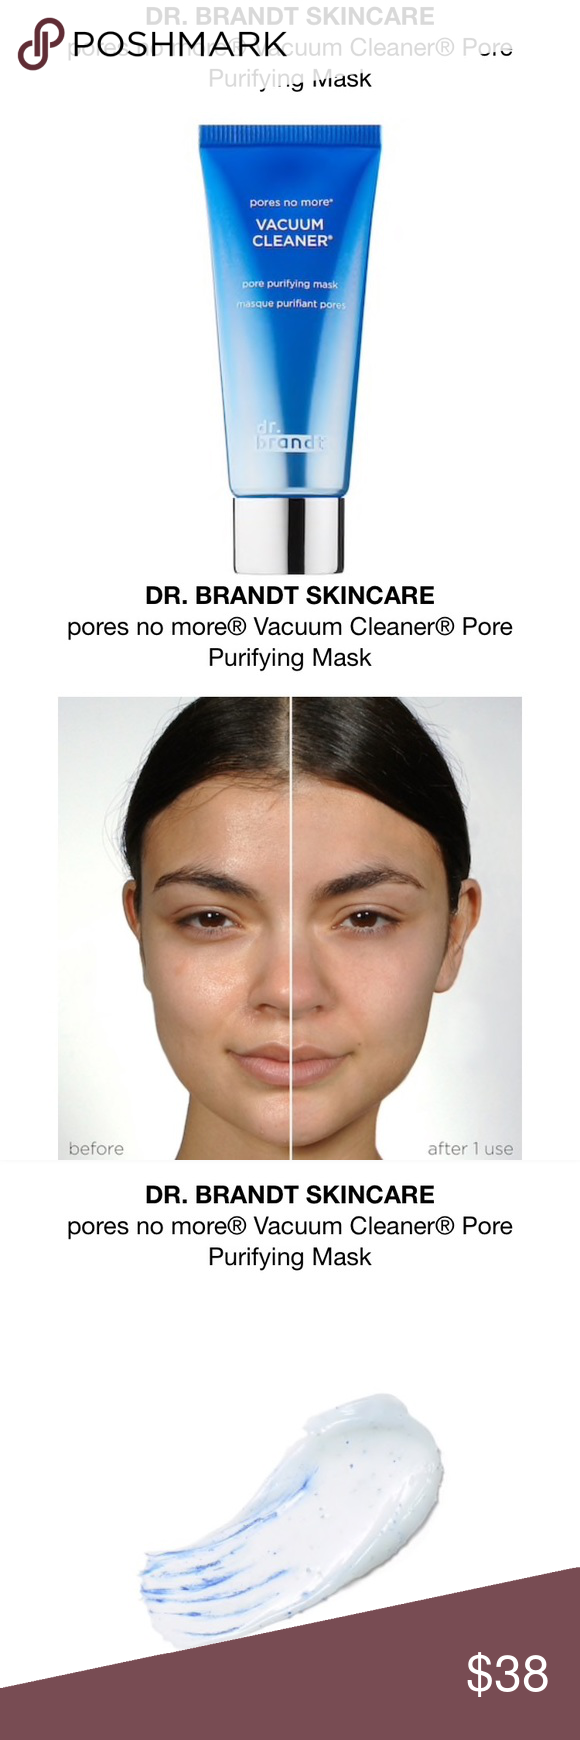 Dr Brandt Pores No More Vacuum Cleaner Sephora Makeup Purifying Mask Sephora